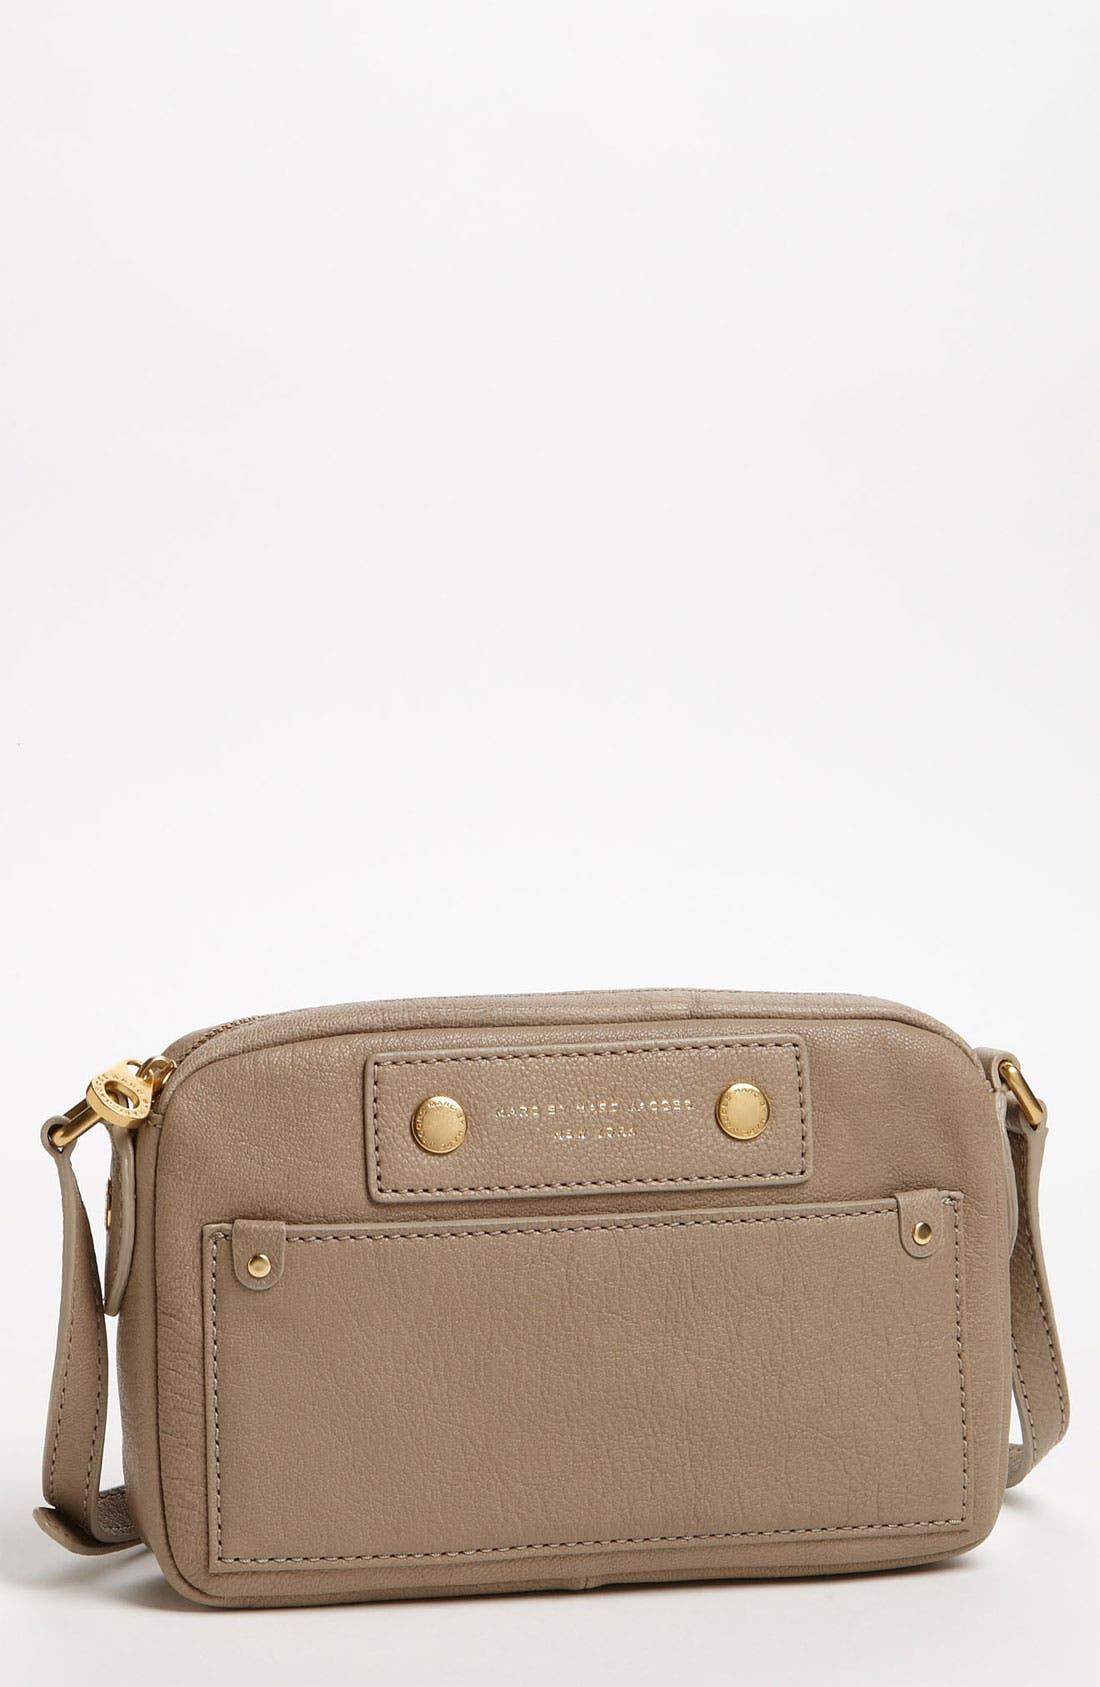 Alternate Image 1 Selected - MARC BY MARC JACOBS 'Preppy - Camera' Leather Crossbody Bag